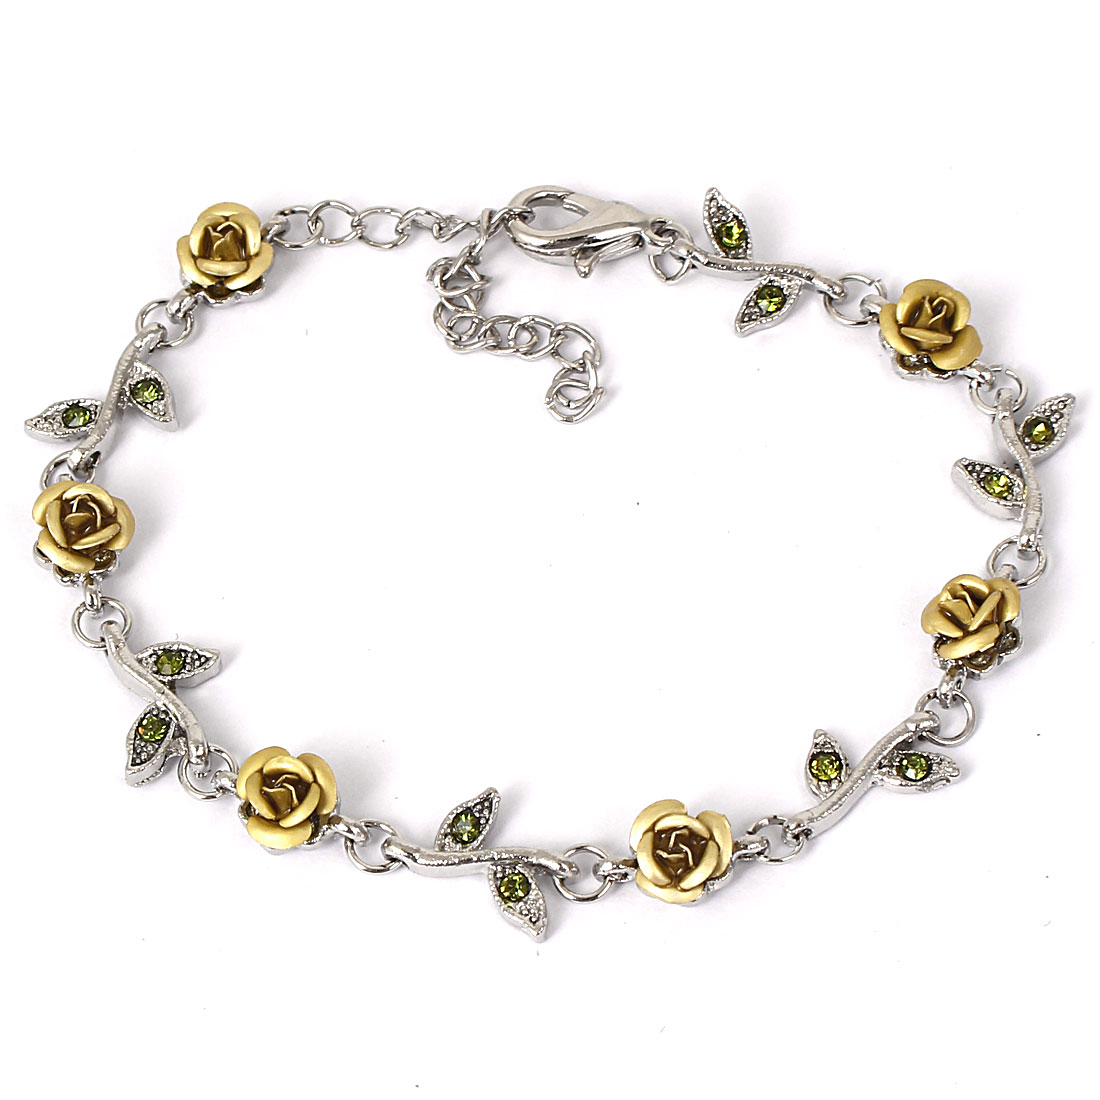 Fashion Jewelry Rose Flower Crystal Decor Alloy Chain Bracelet Silver Tone Beige